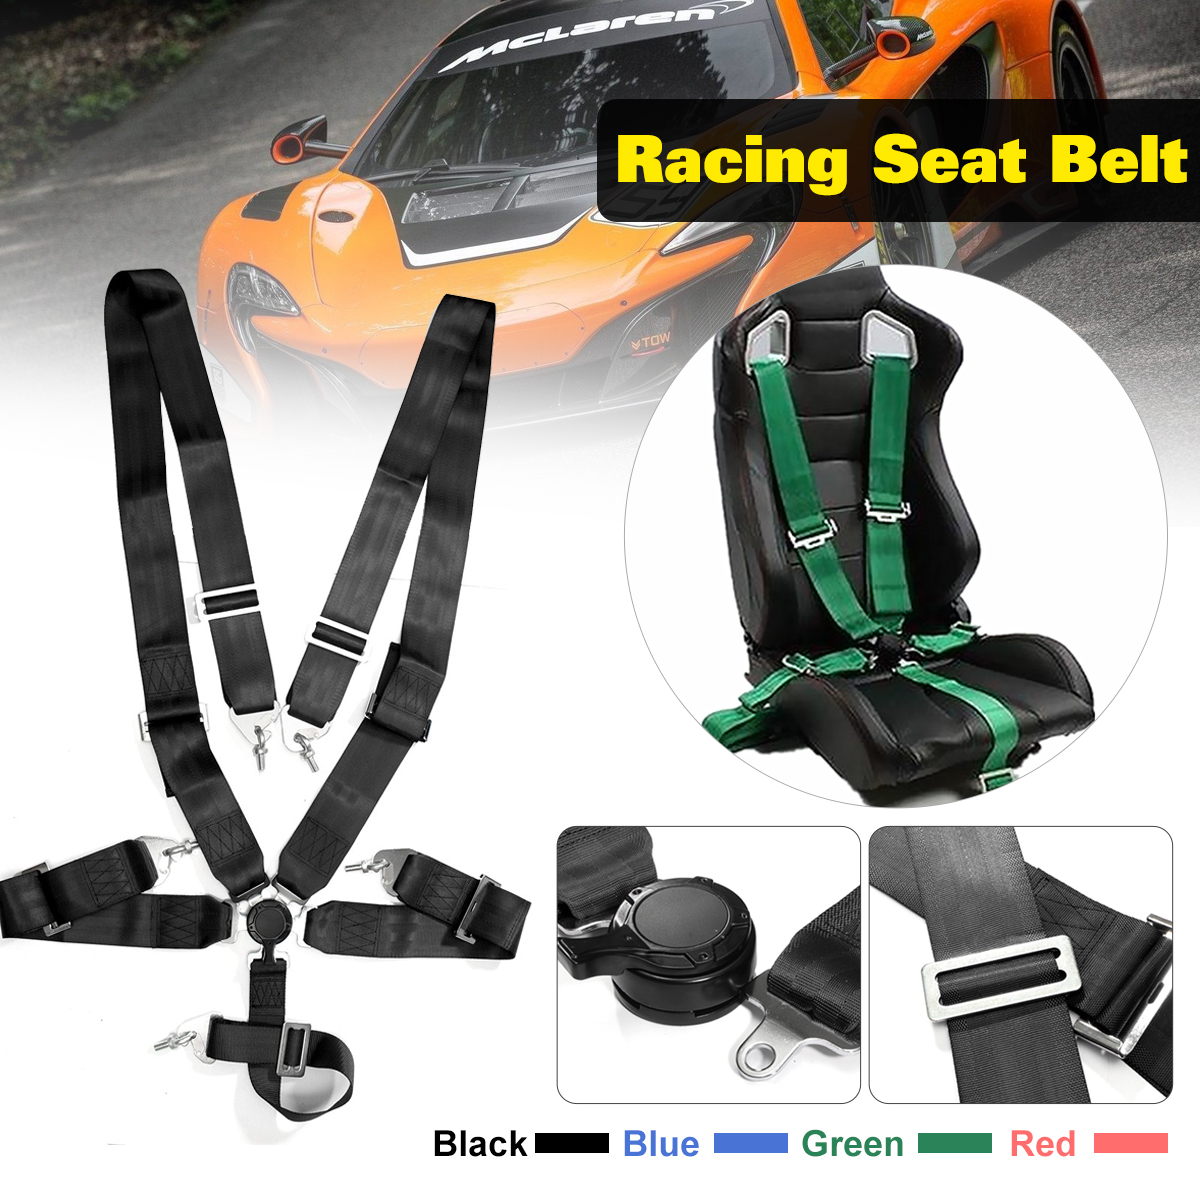 5 Point Cam Lock Racing Car Seat Belt Race Safety Adjustable Strap Nylon Harness Universal Vehicle Racing Safety Seat Belt